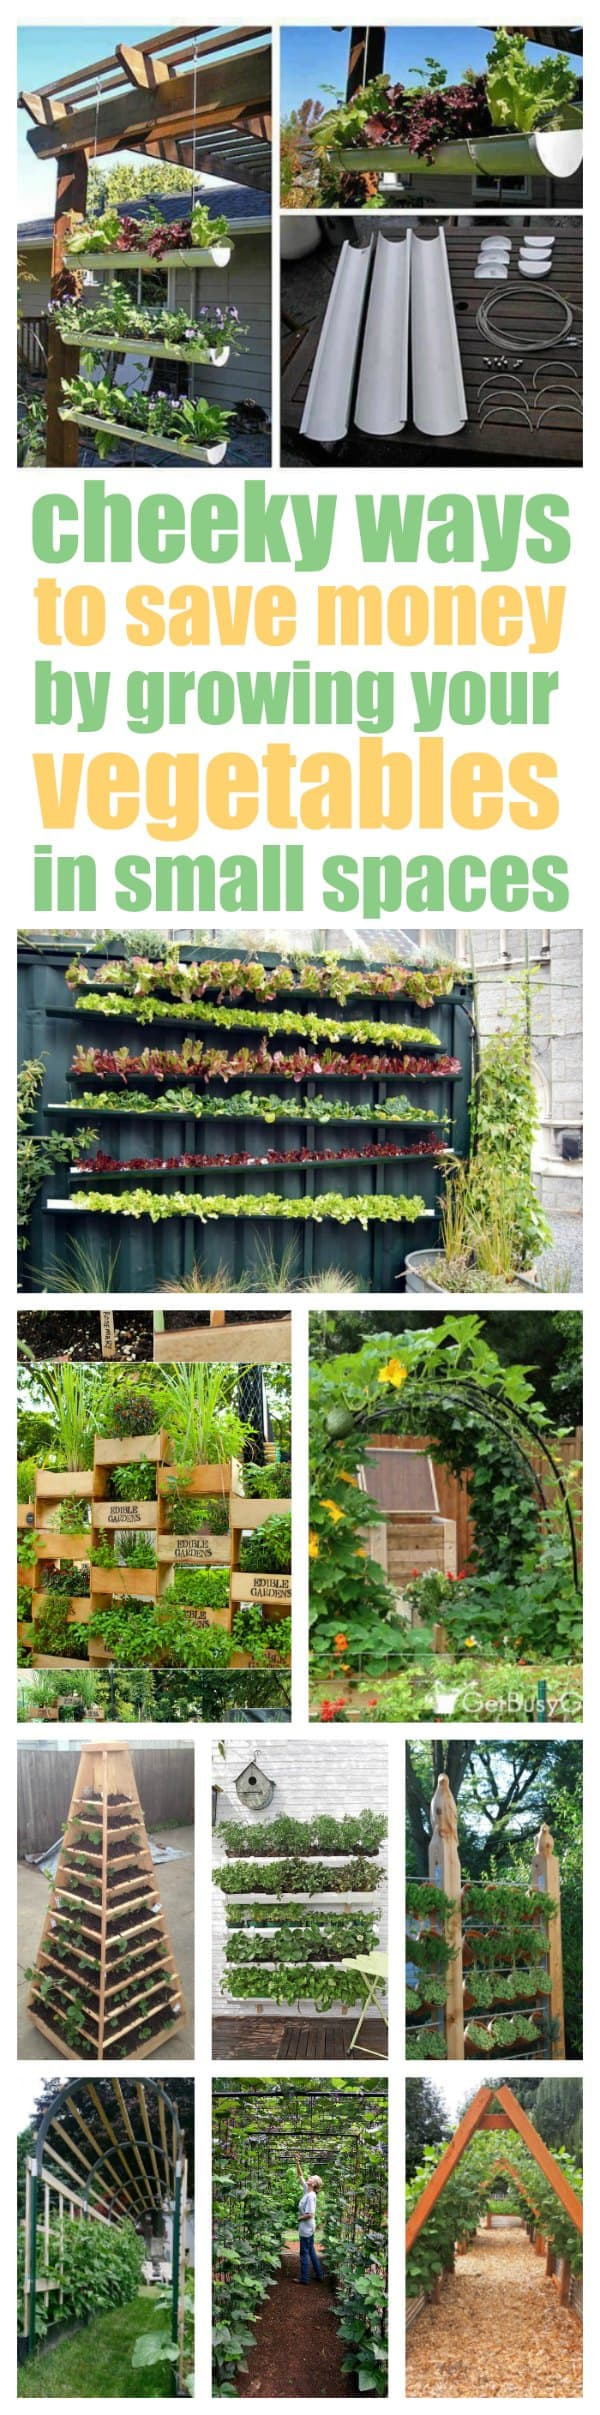 Vertical Vegetable Garden Ideas That Will Solve Your Space Problems